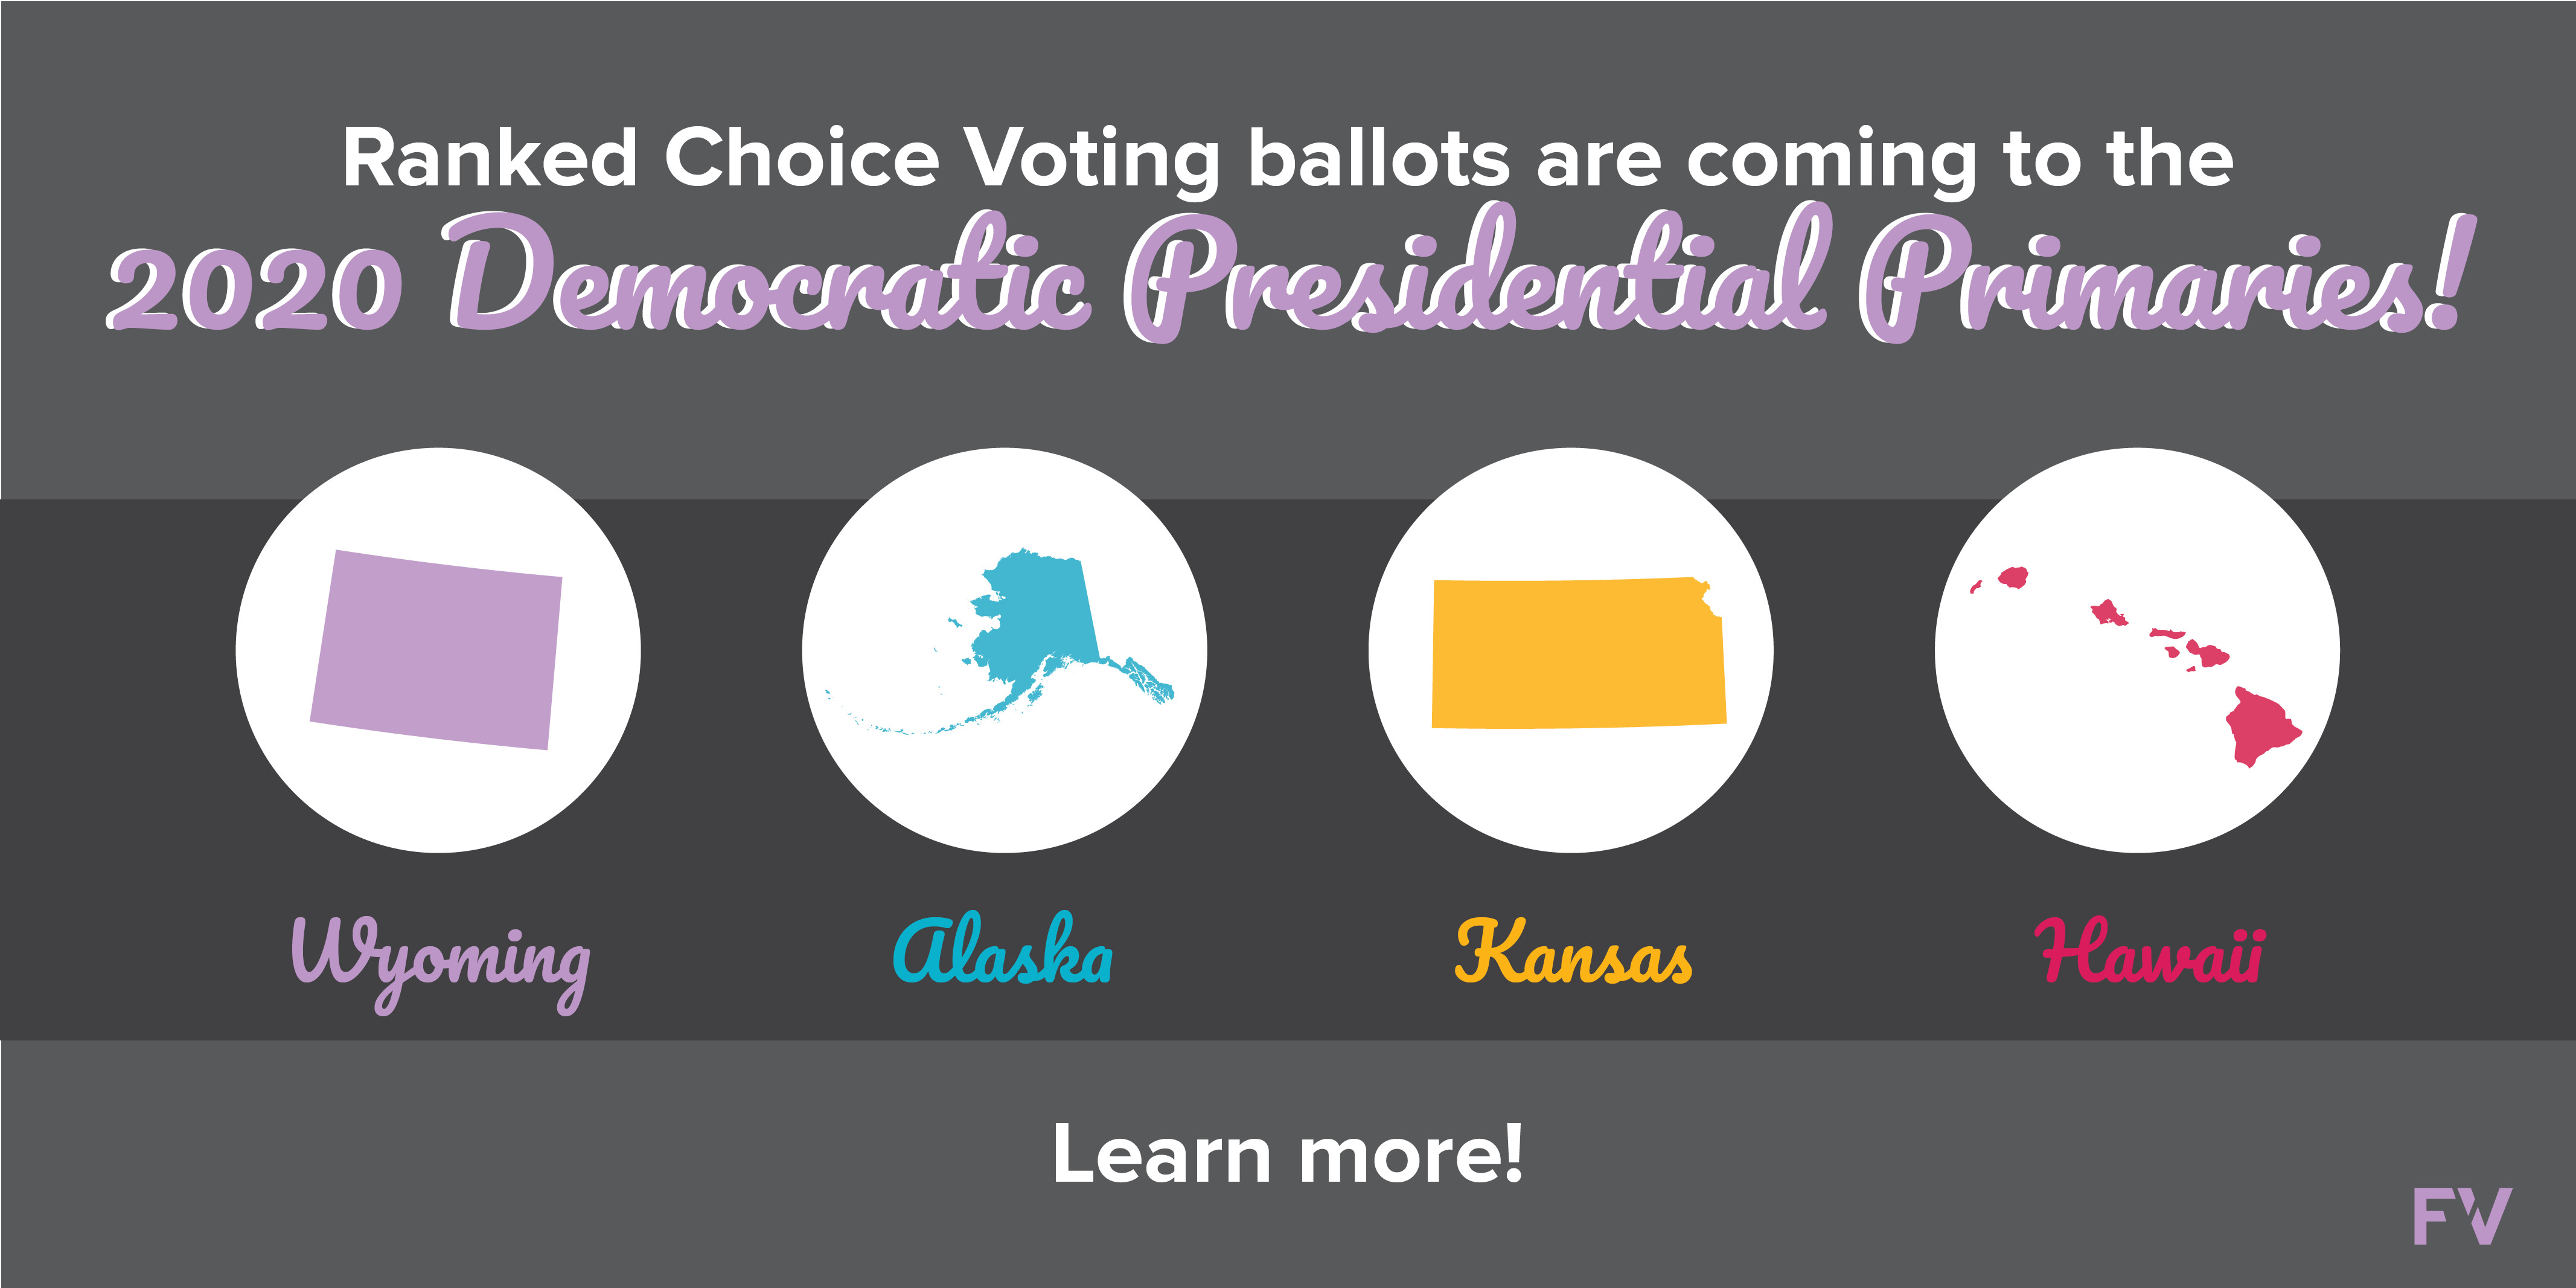 4 State Democratic Parties are ready to use ranked choice voting for their Presidential Primaries